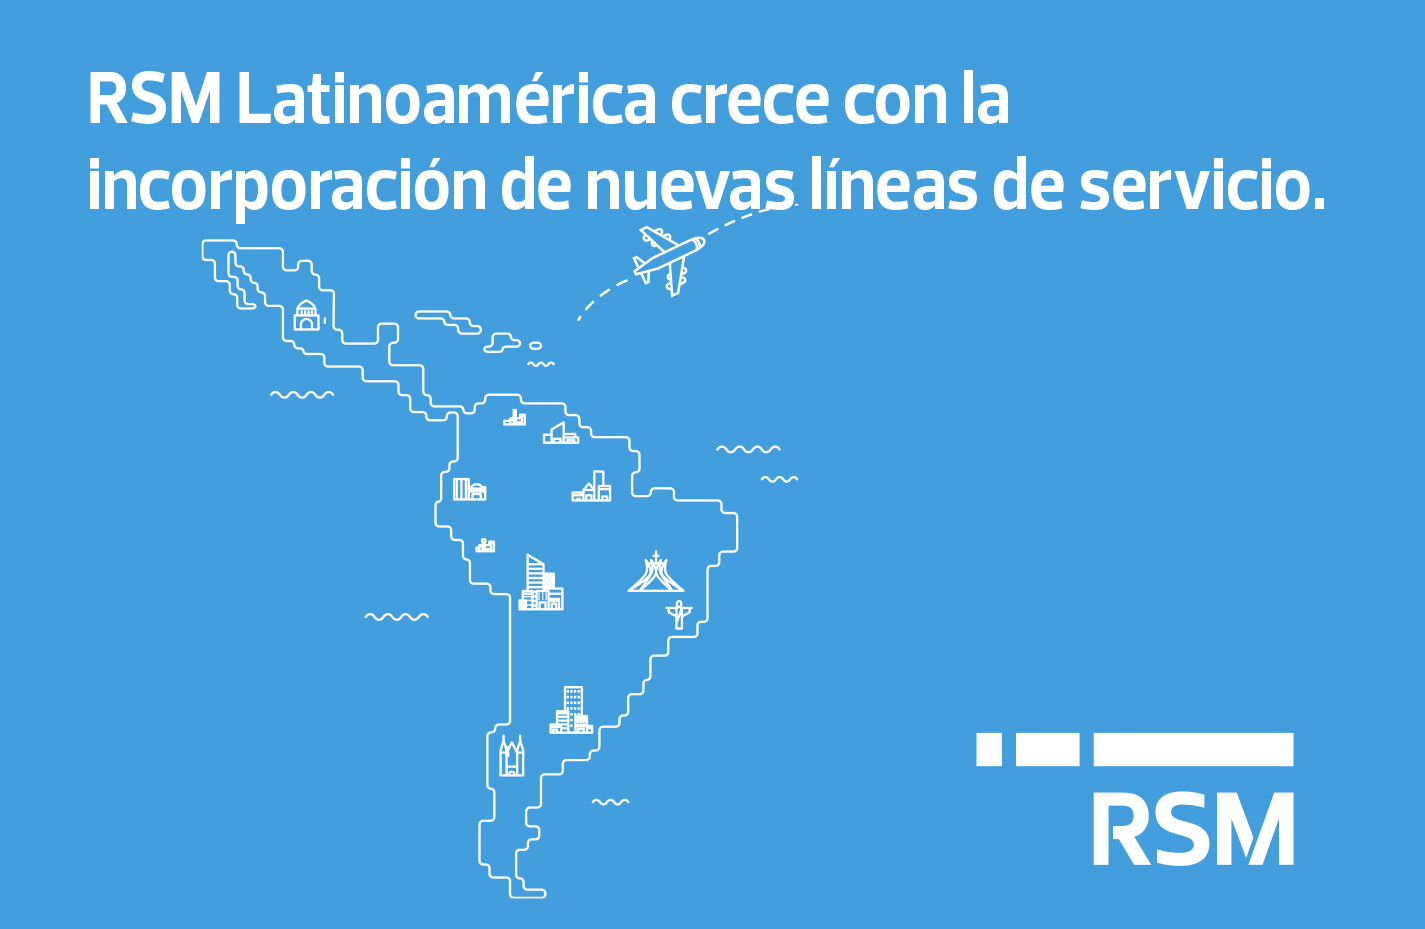 RSM Latin America grows through new service lines